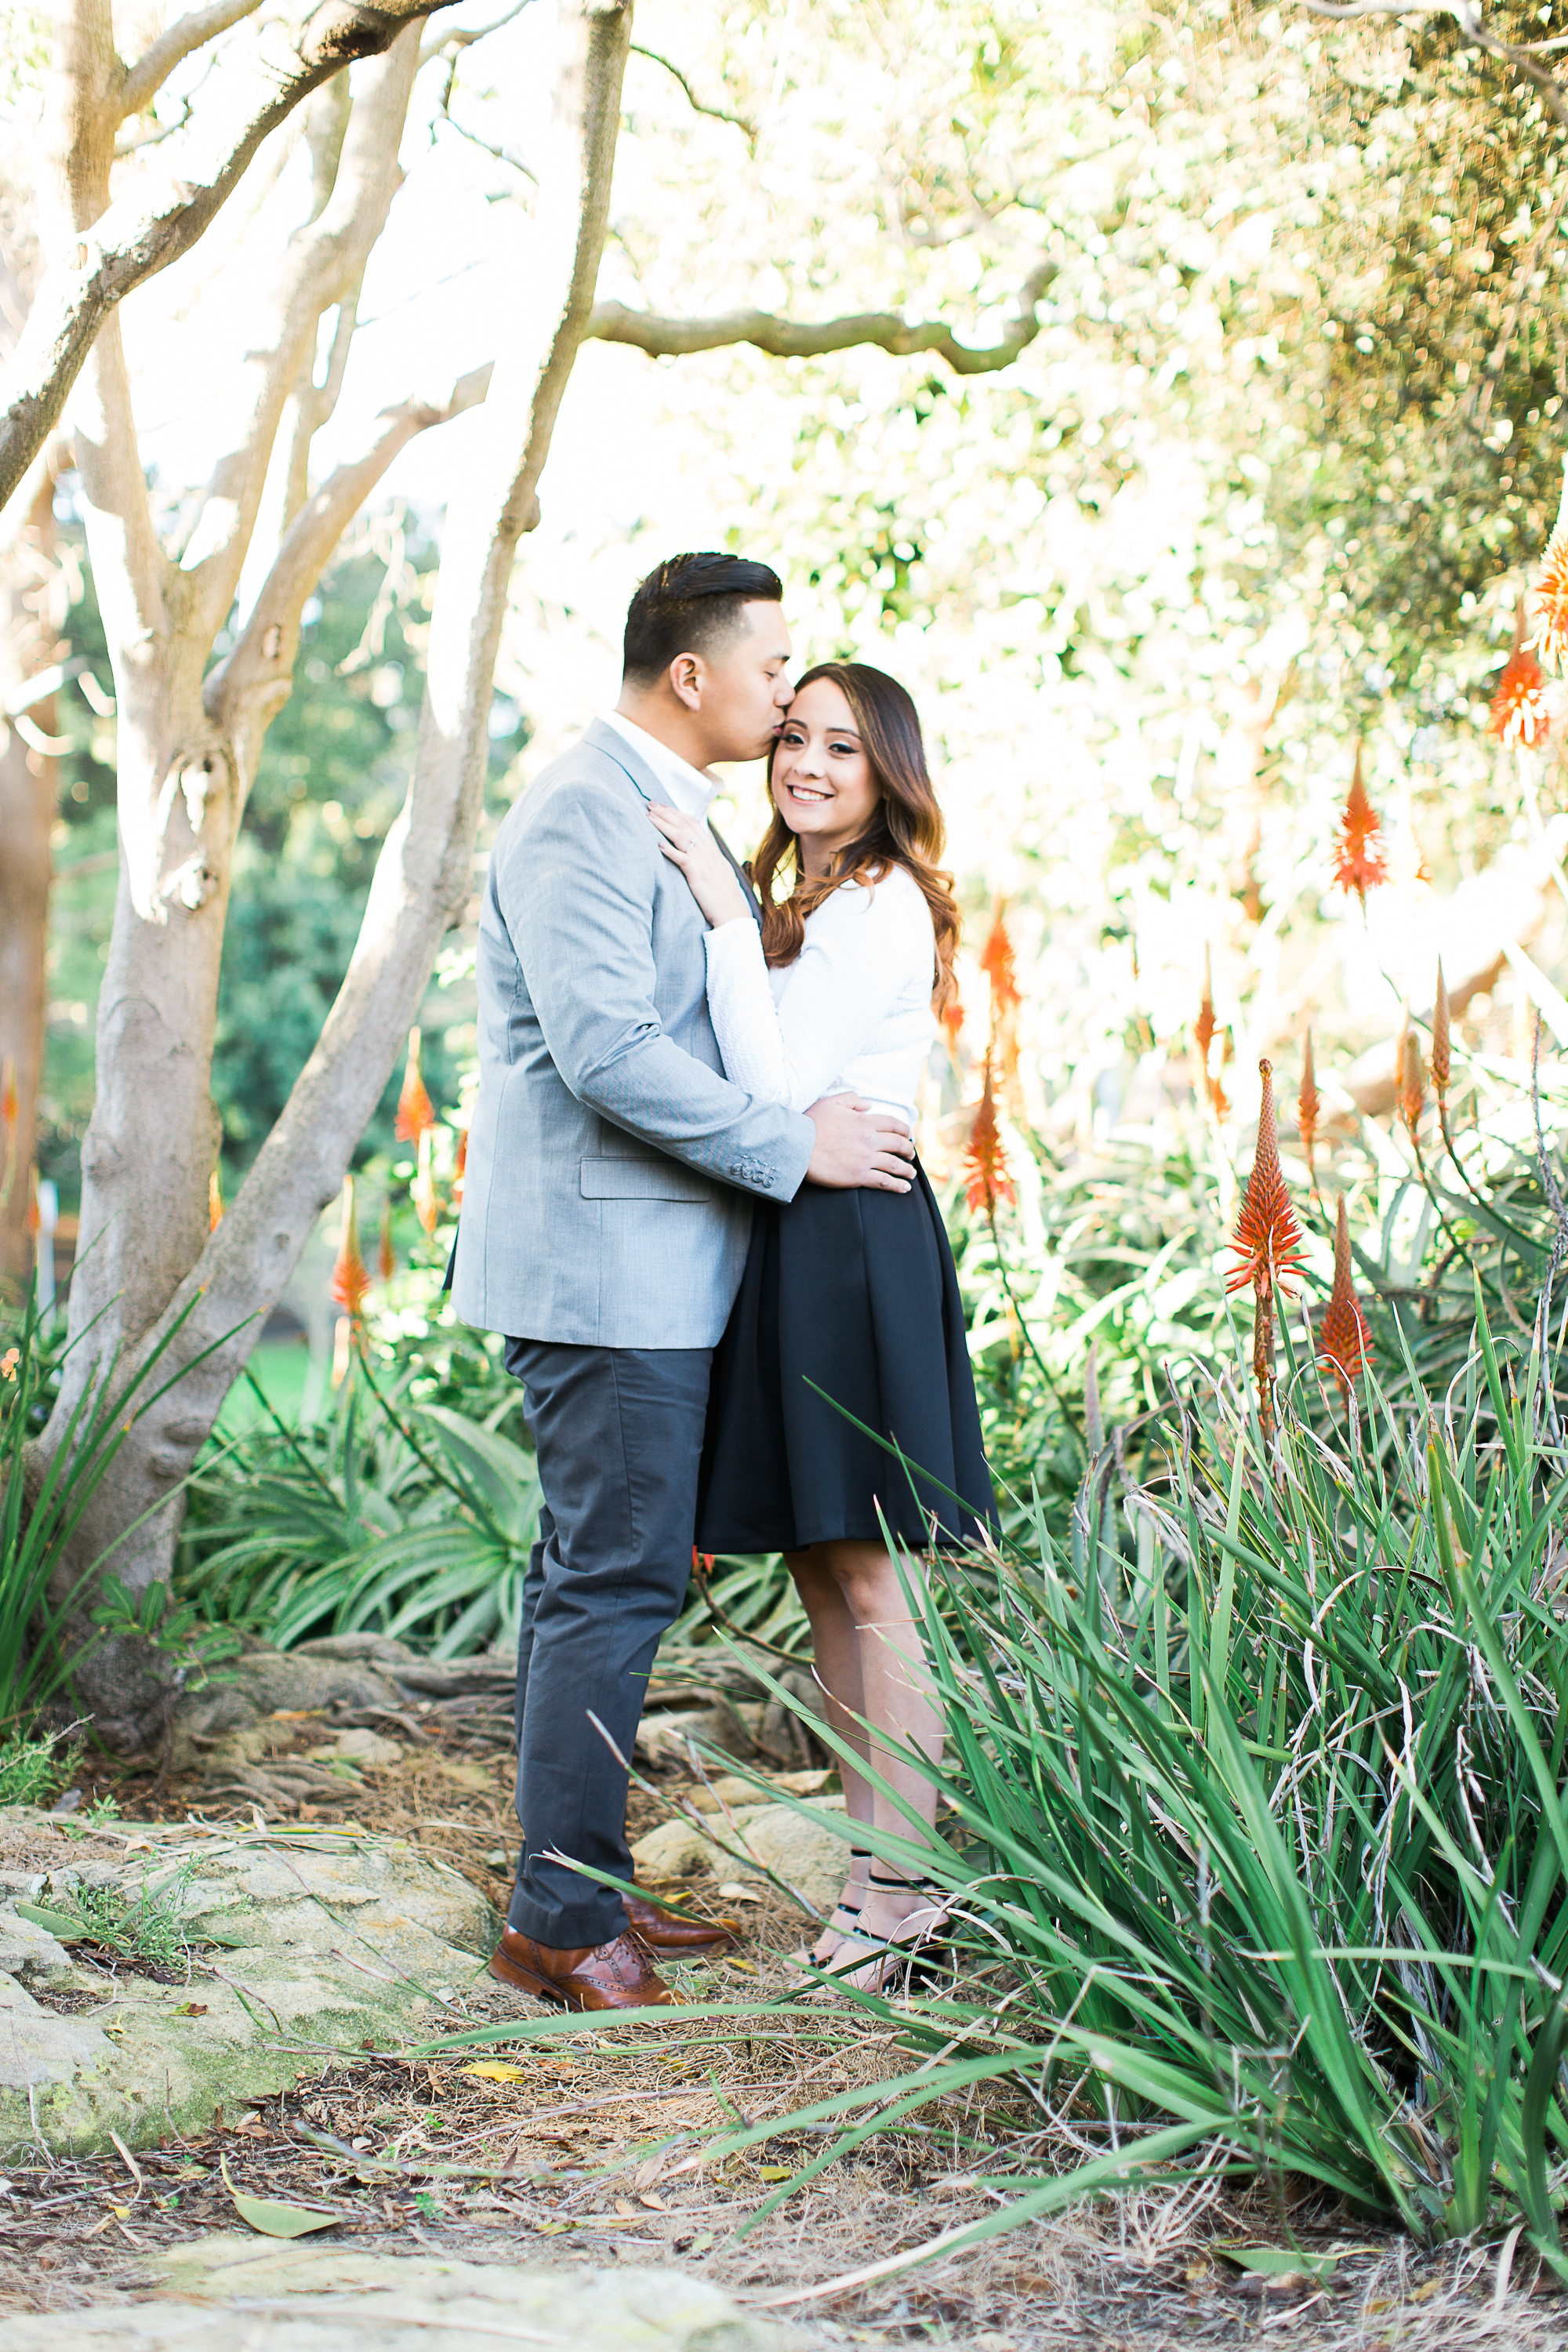 Klint and Yessy Engagement _ Brandon J Ferlin Photography-9.jpg